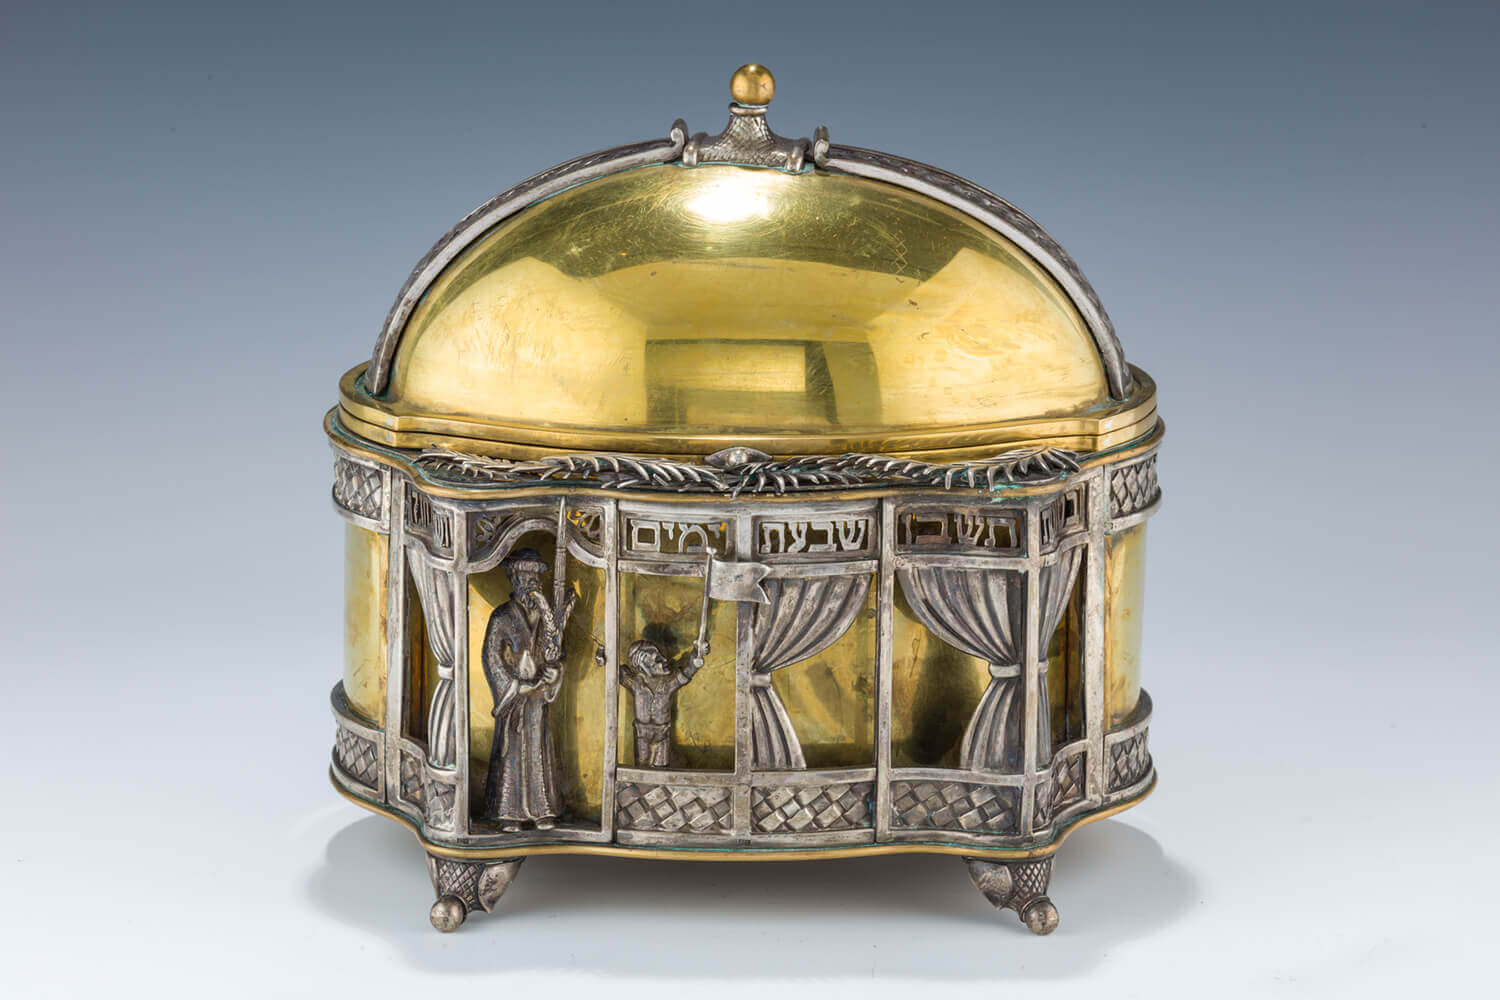 159. A SILVER ETROG CONTAINER BY DUDIK SWED